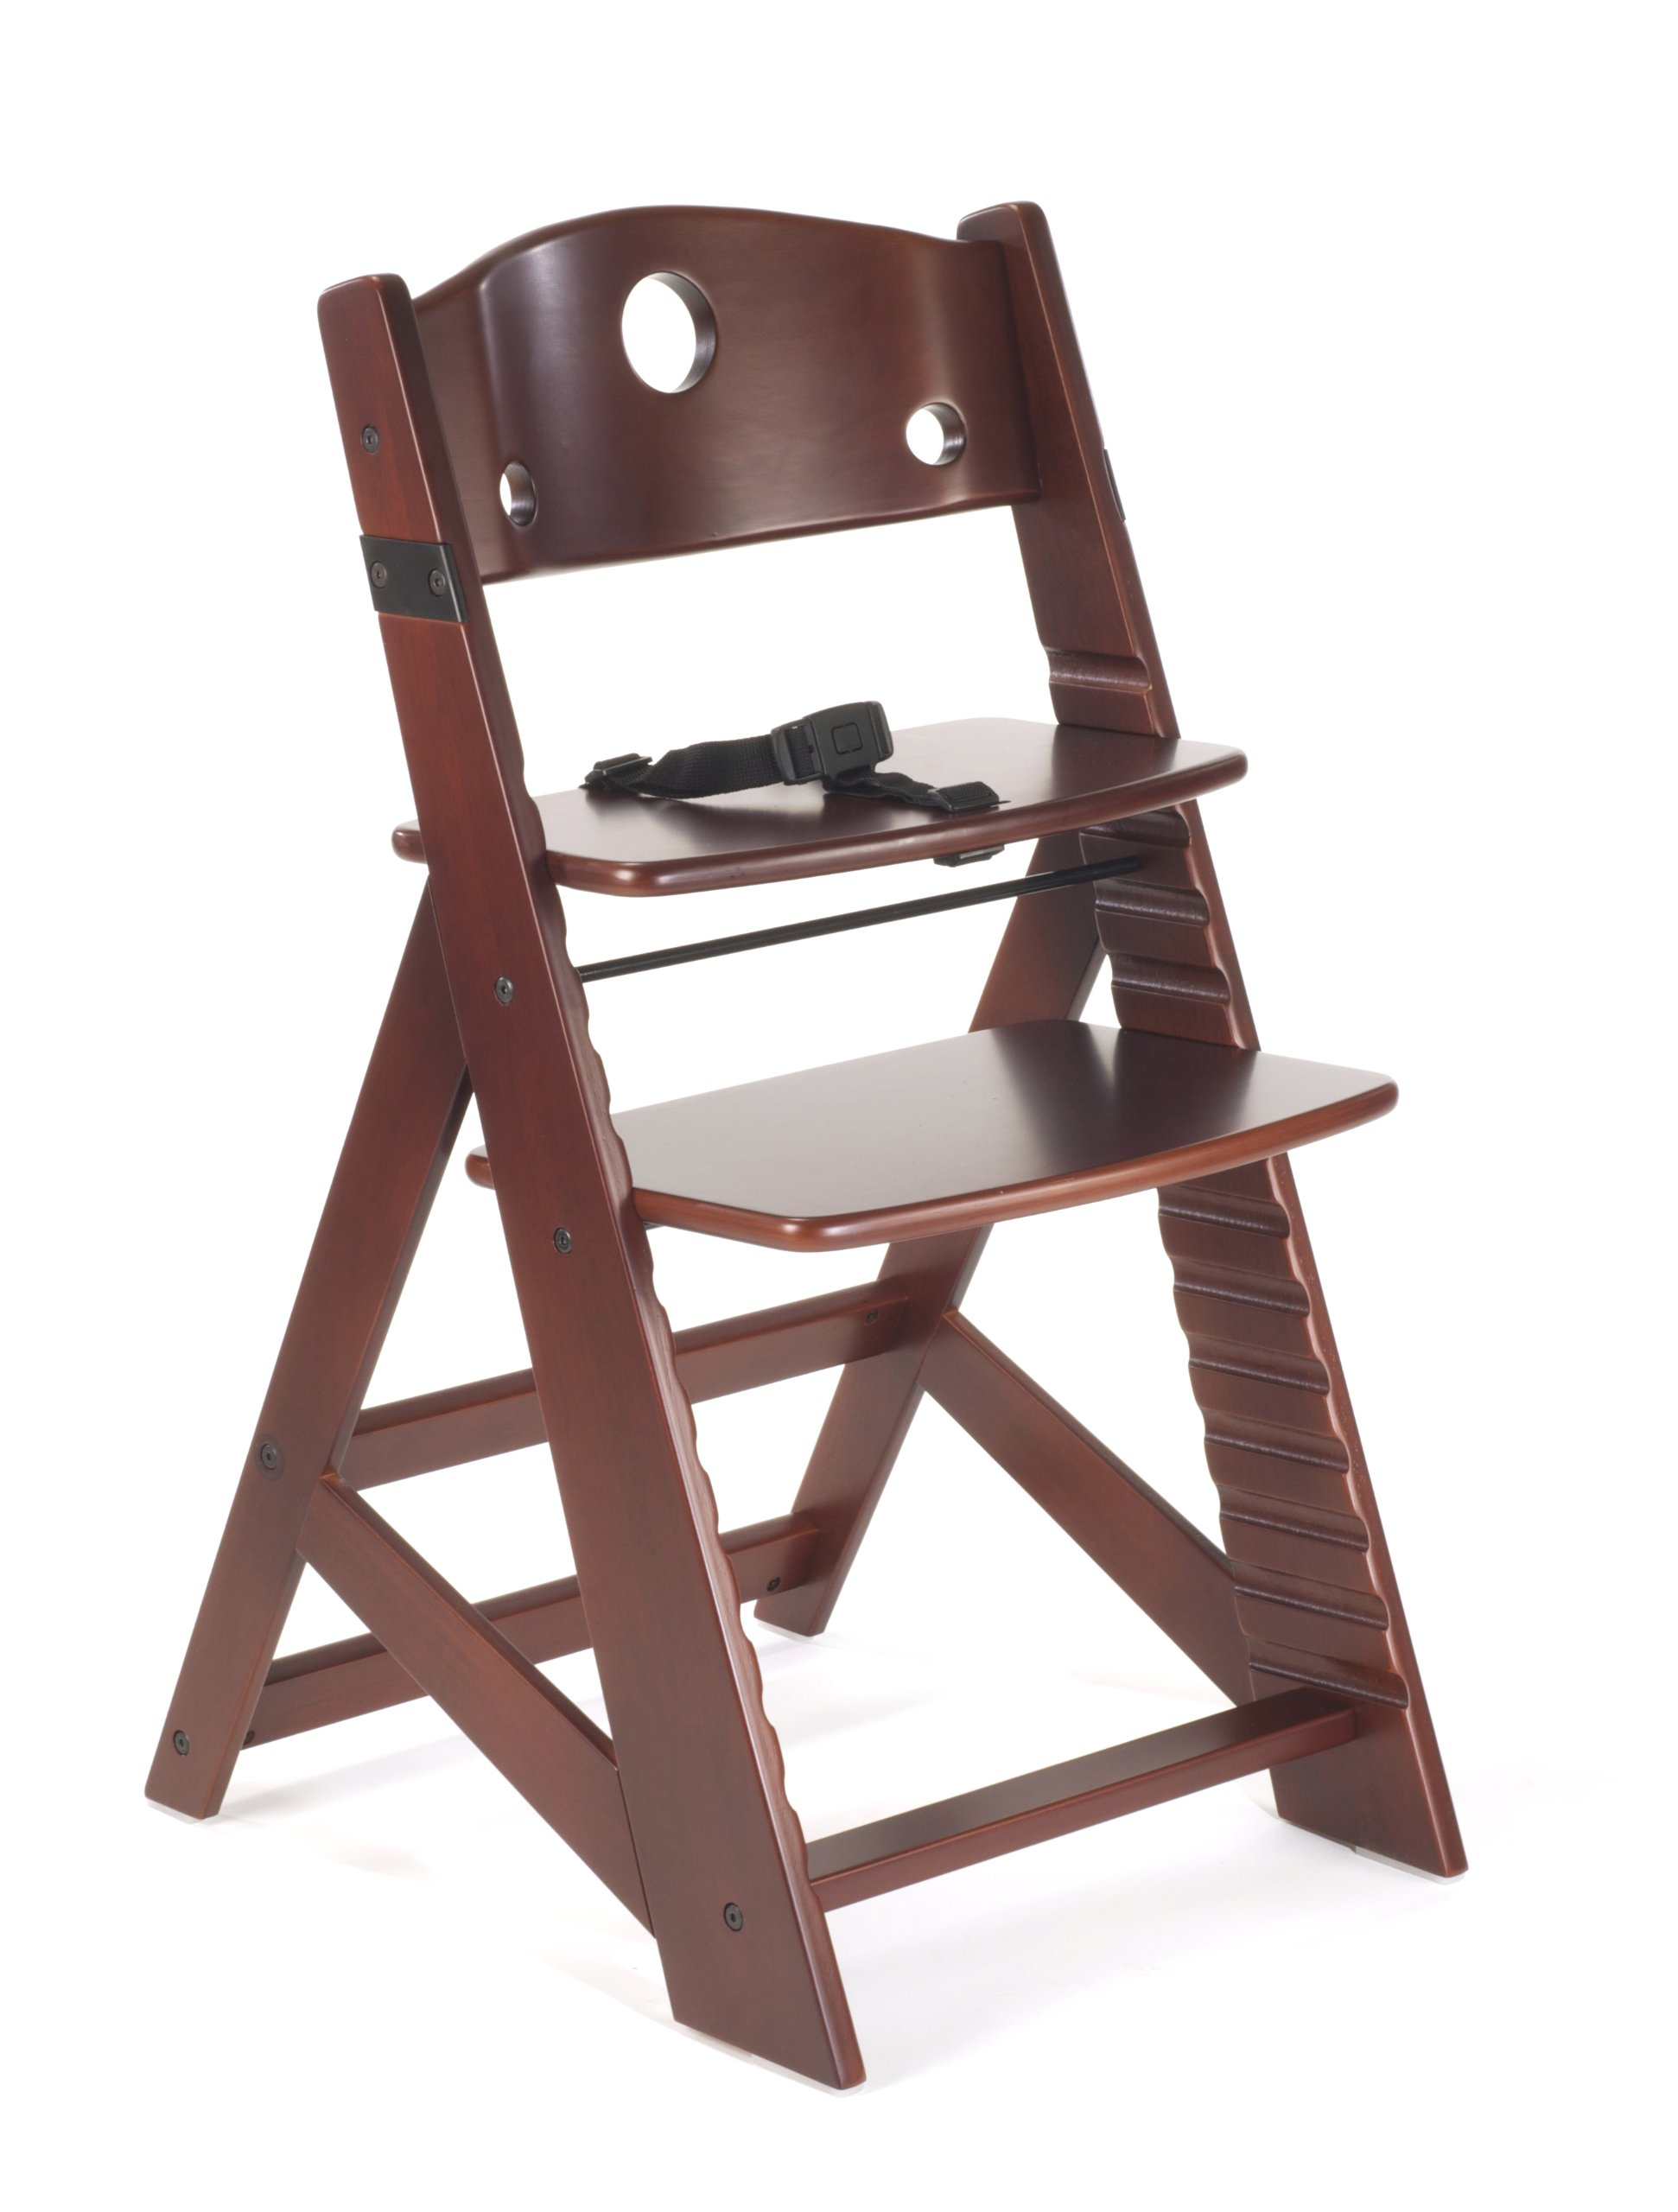 Keekaroo Height Right Kids High Chair, Mahogany by Keekaroo